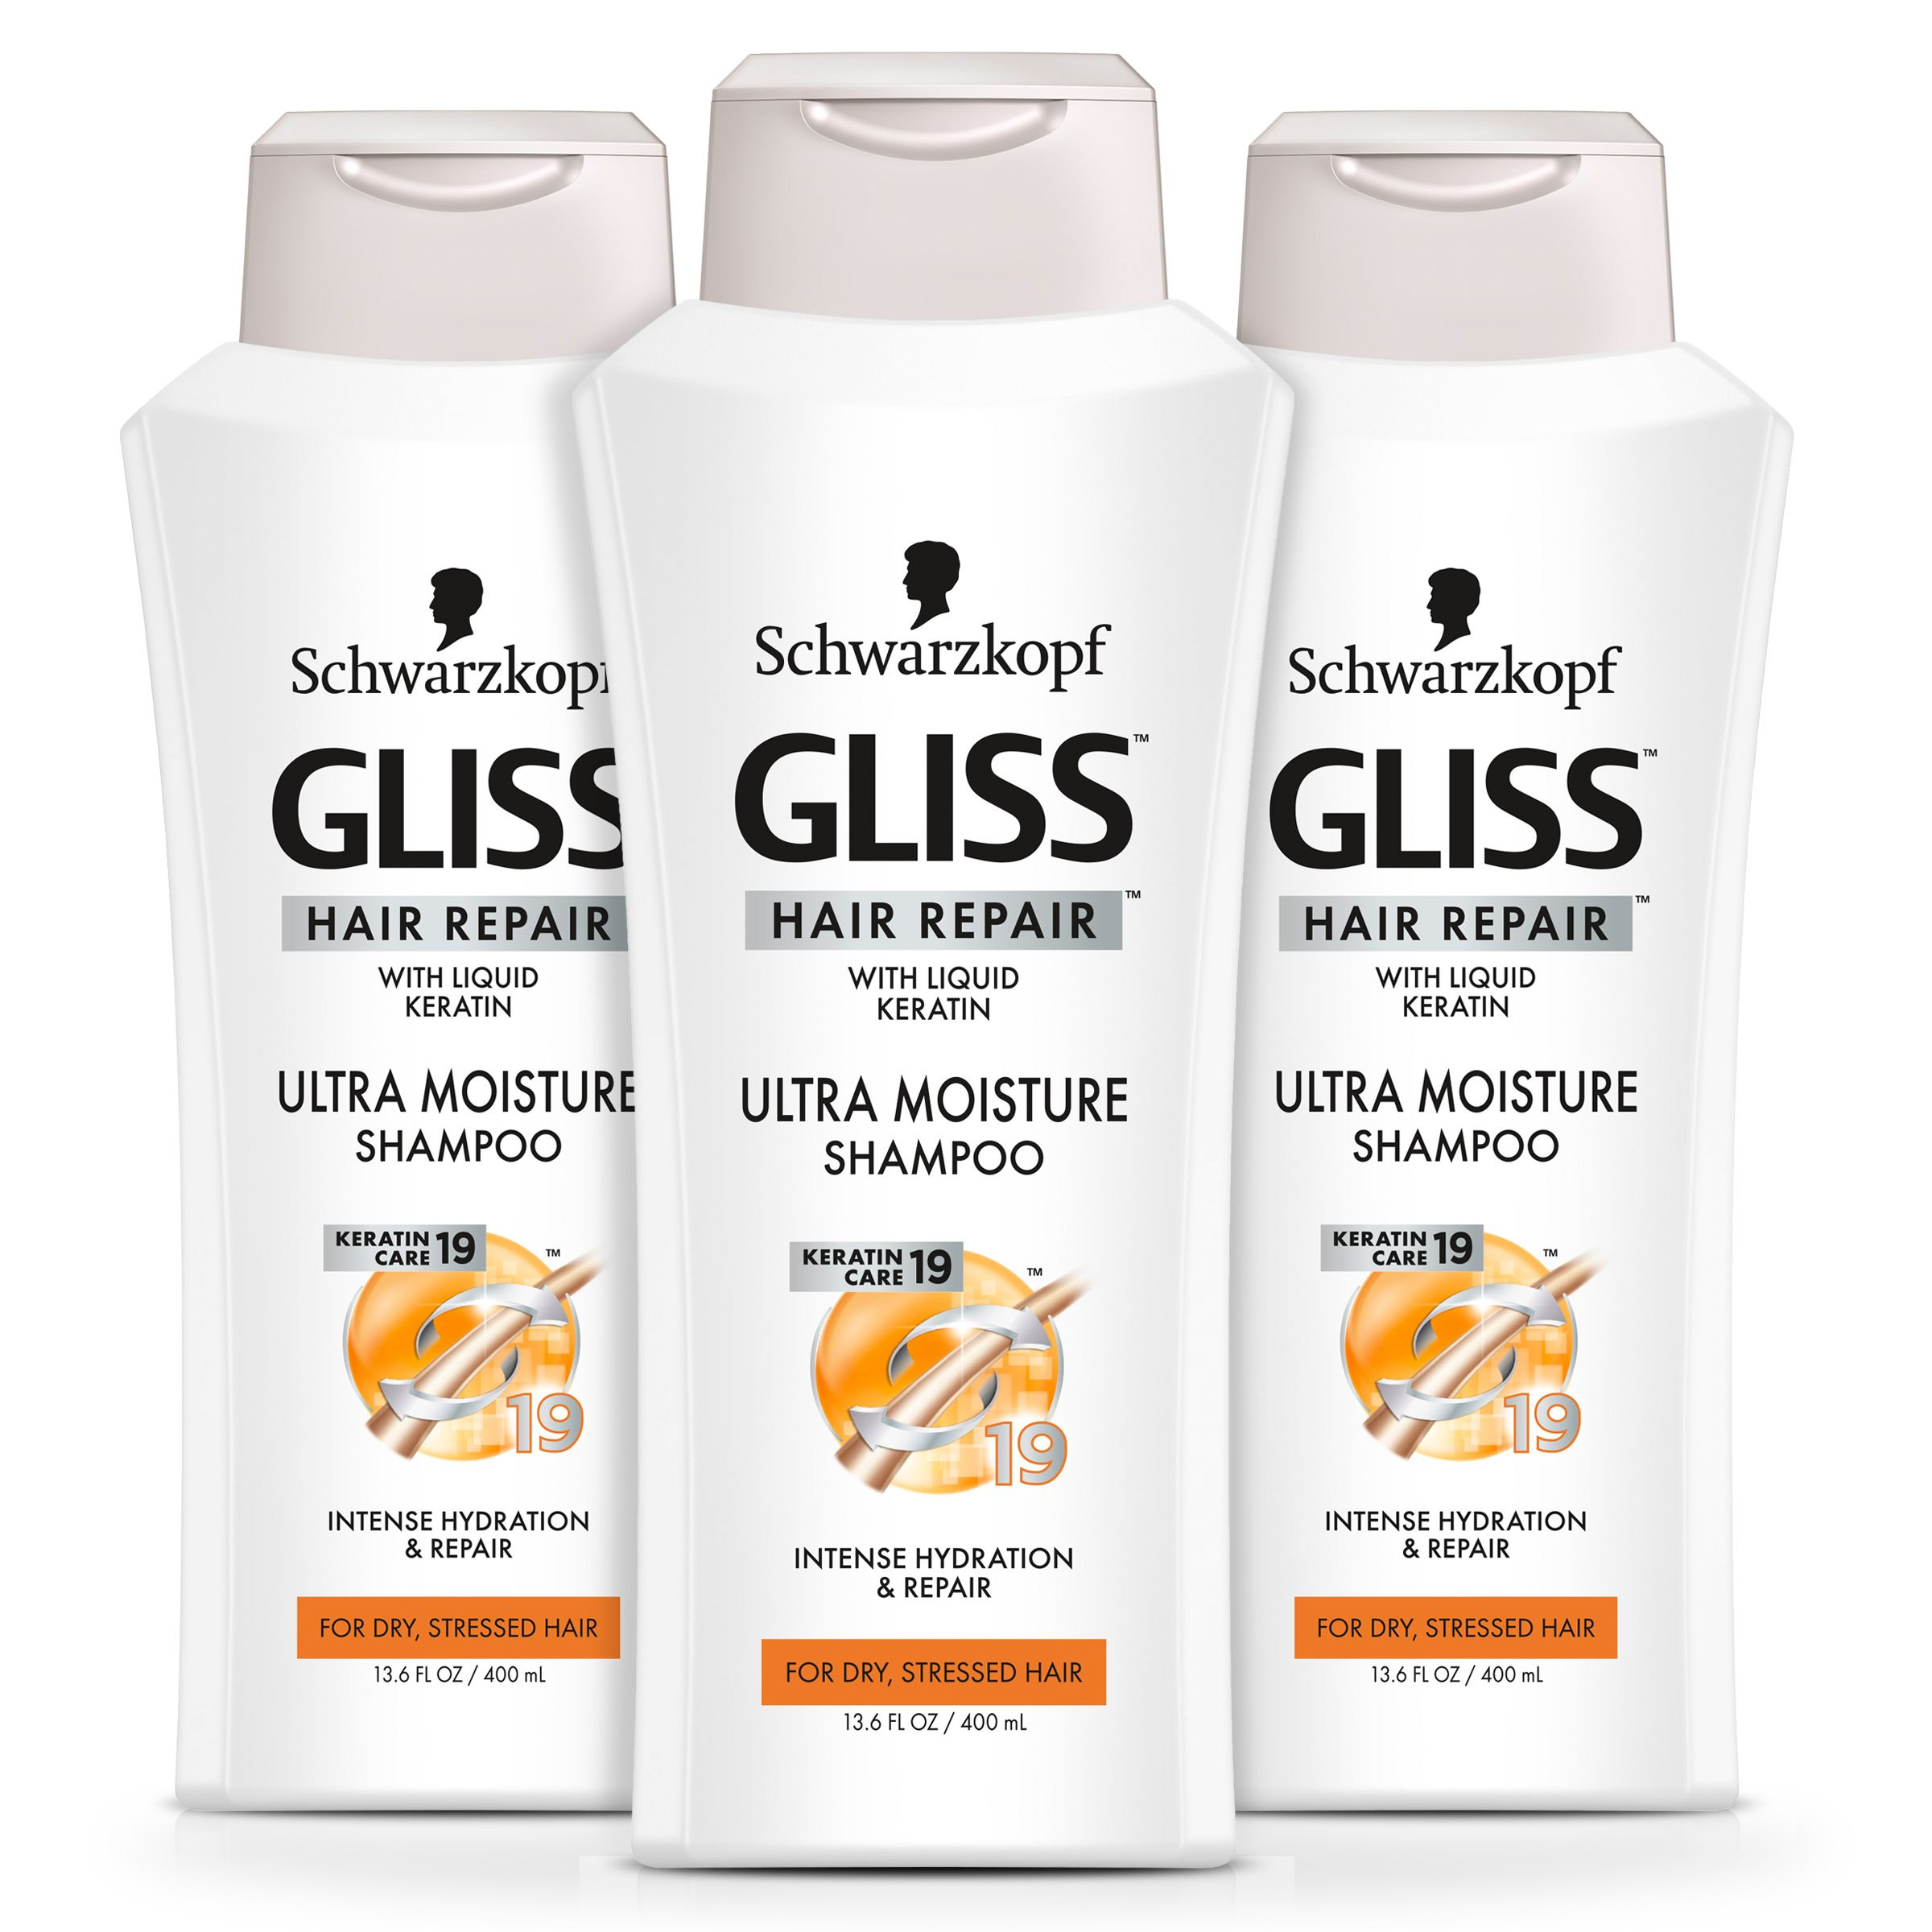 GLISS Hair Repair Shampoo, Ultra Moisture for Dry or Stressed Hair, 13.6 Ounces (Pack of 3)